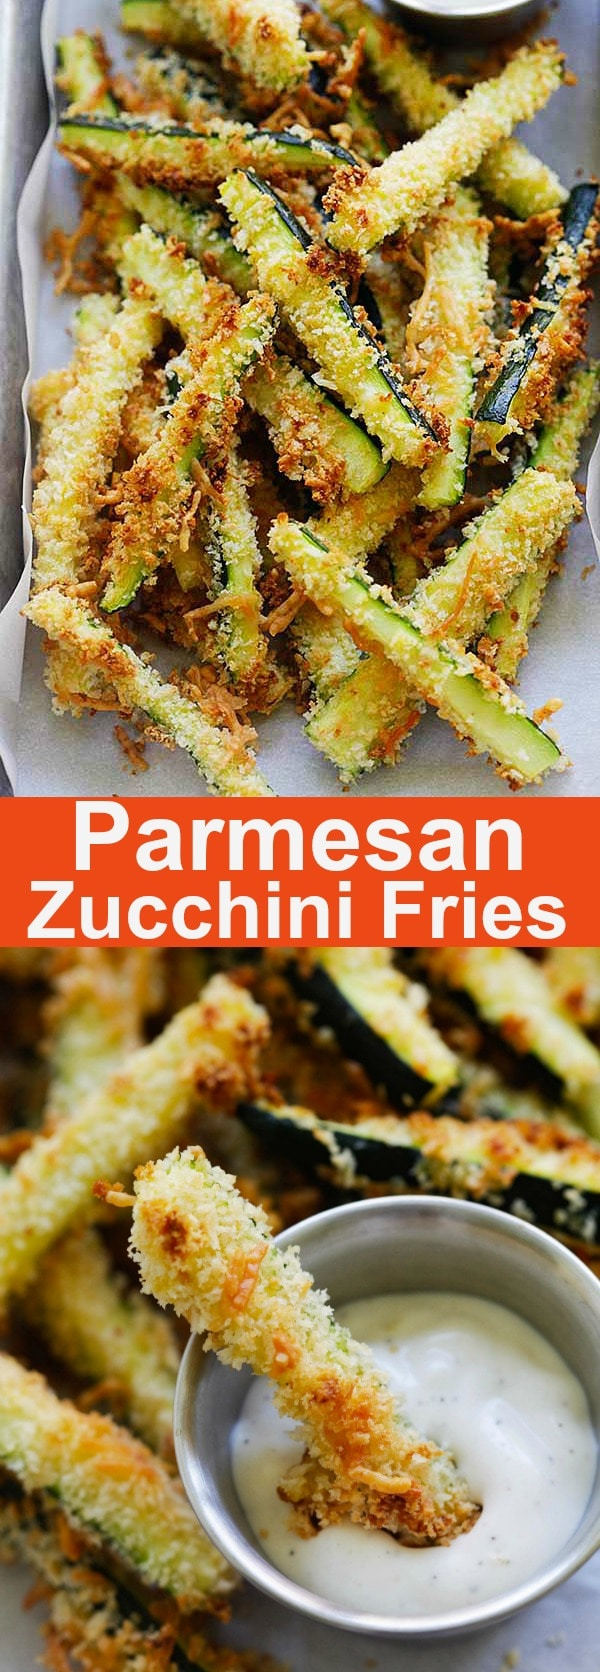 Parmesan Zucchini Fries Healthy And Extra Crispy Rasa